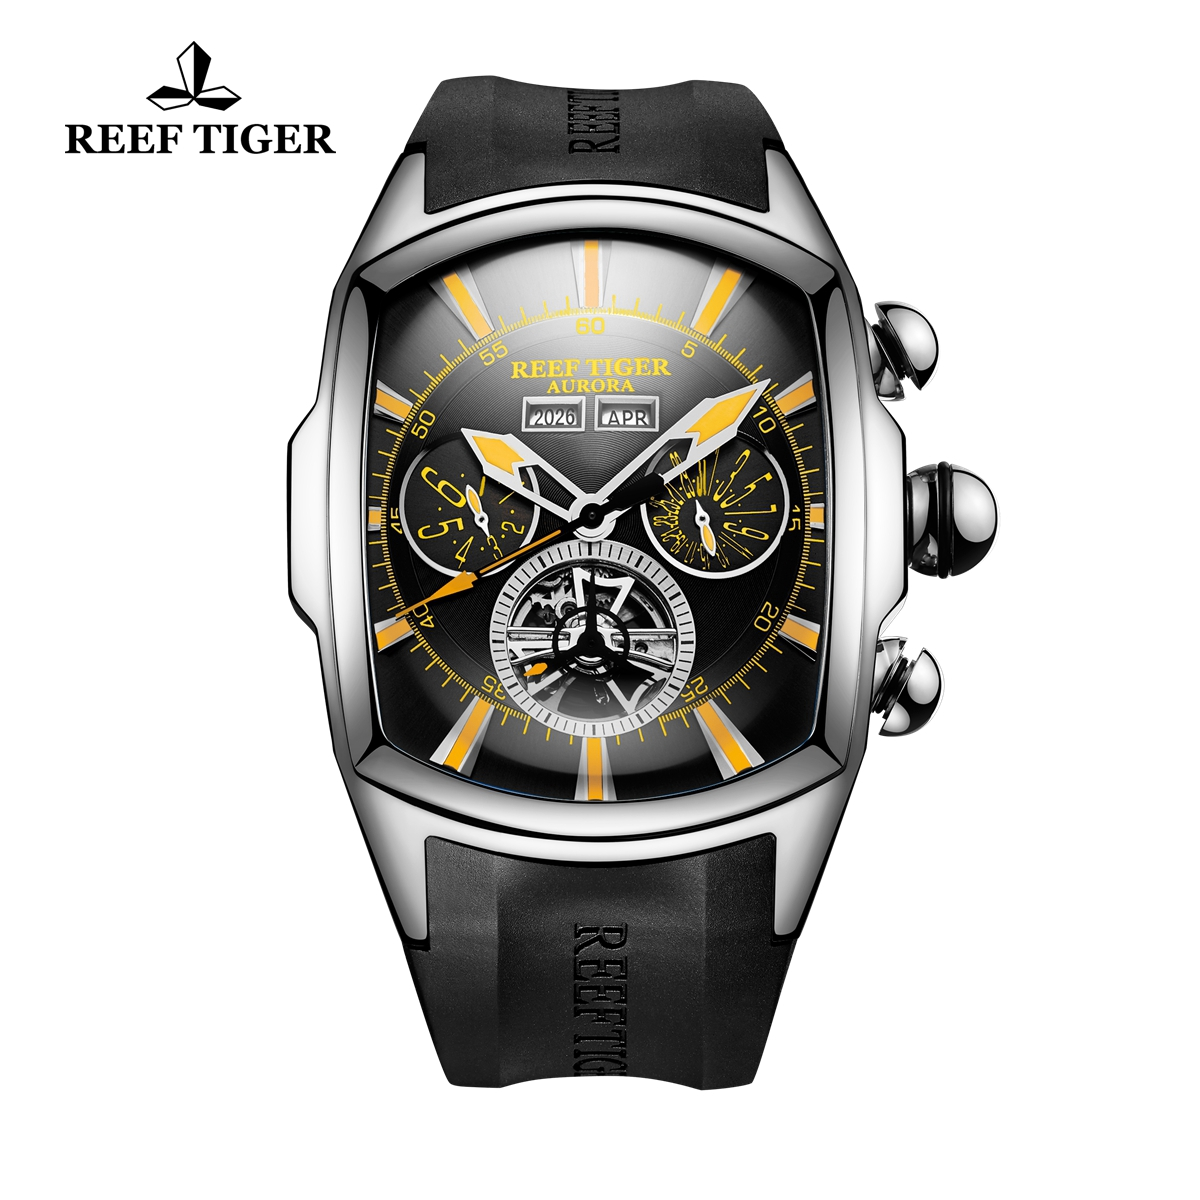 Reef Tiger Automatic Sport Watches Stainless Steel Case Black Dial Rubber Strap Watches RGA3069-YBBG